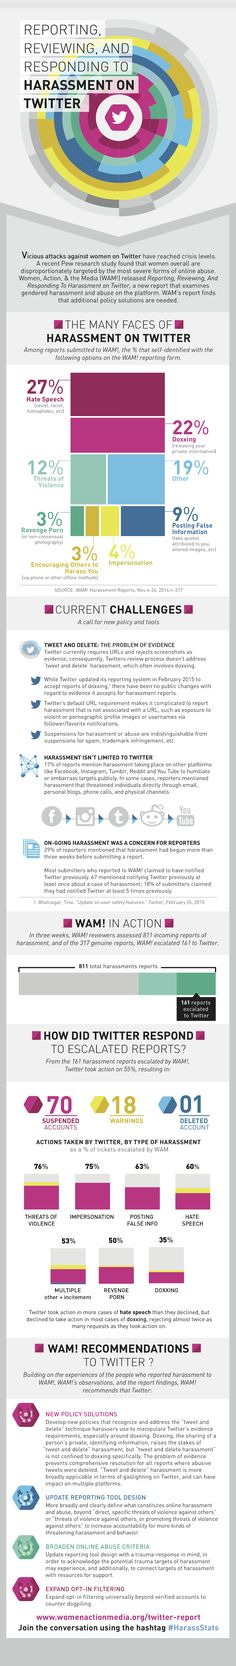 Great information on Twitter harassment statistics, legal and technical aids. #Socialmedia  #Harassment